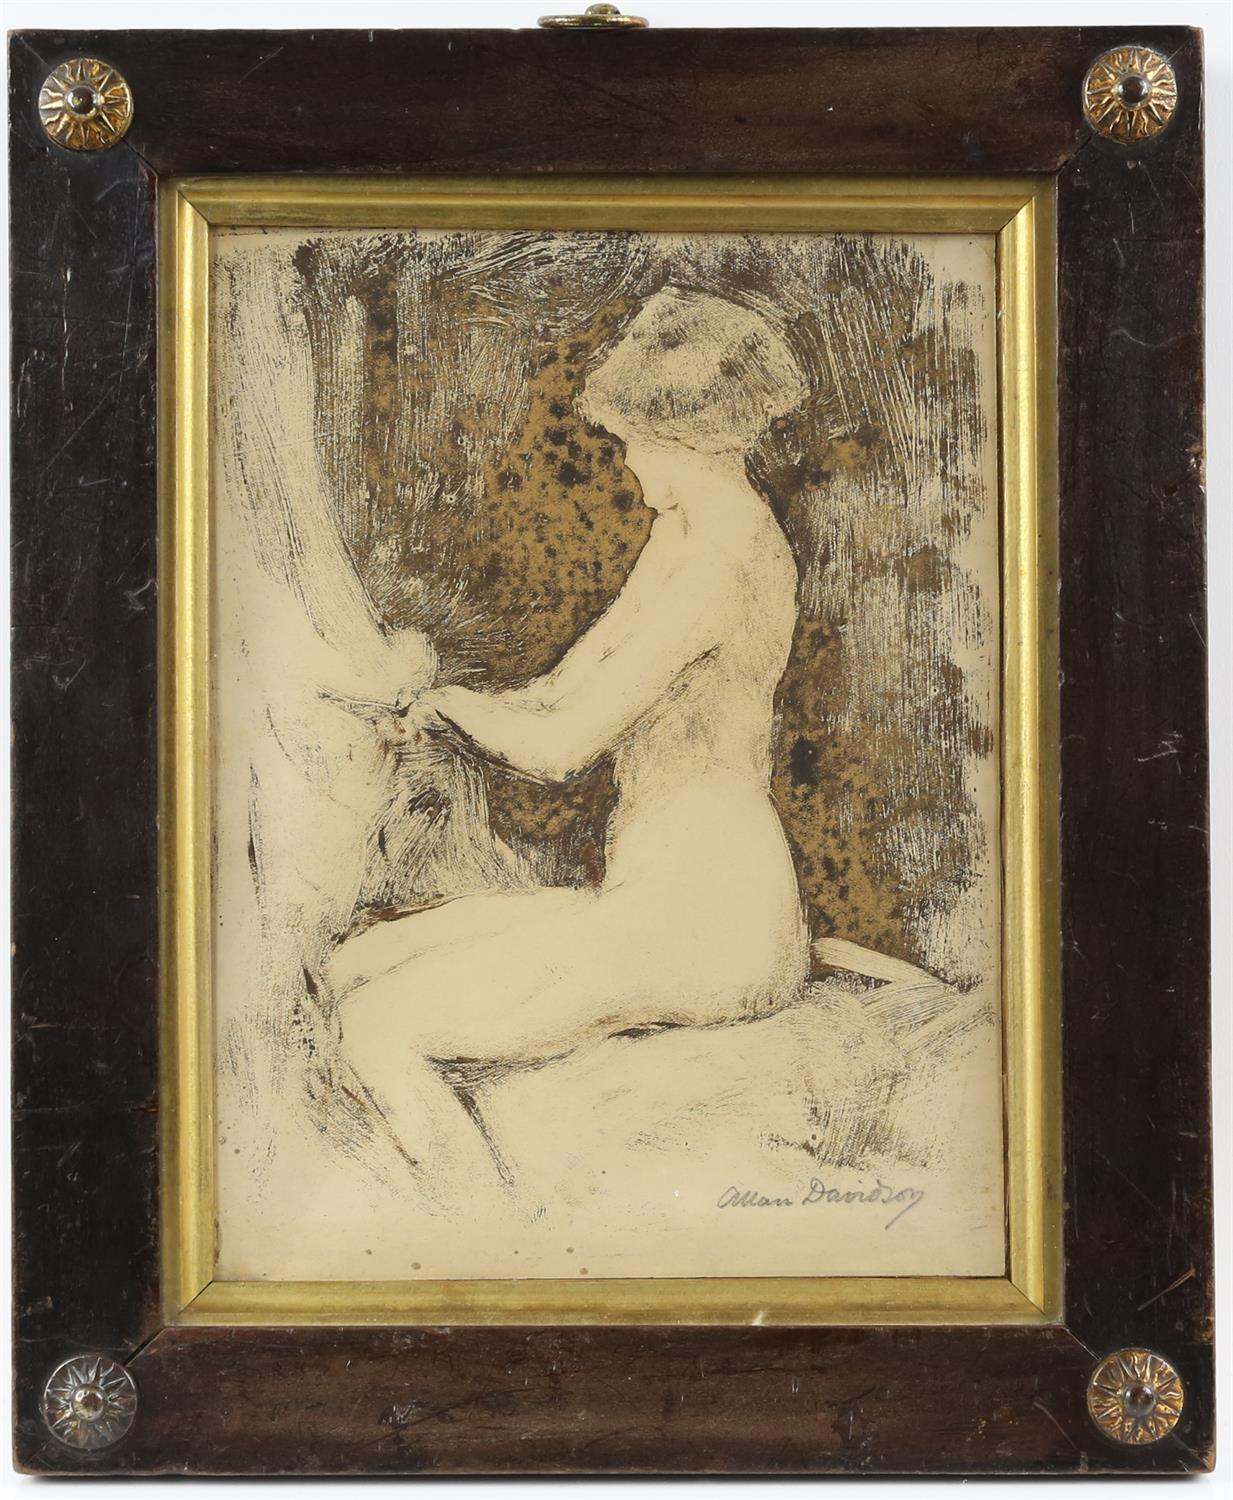 Allan Davidson (British, 1873-1932), seated nude, signed, oil on paper, 22cm x 16.5cm, - Image 2 of 4